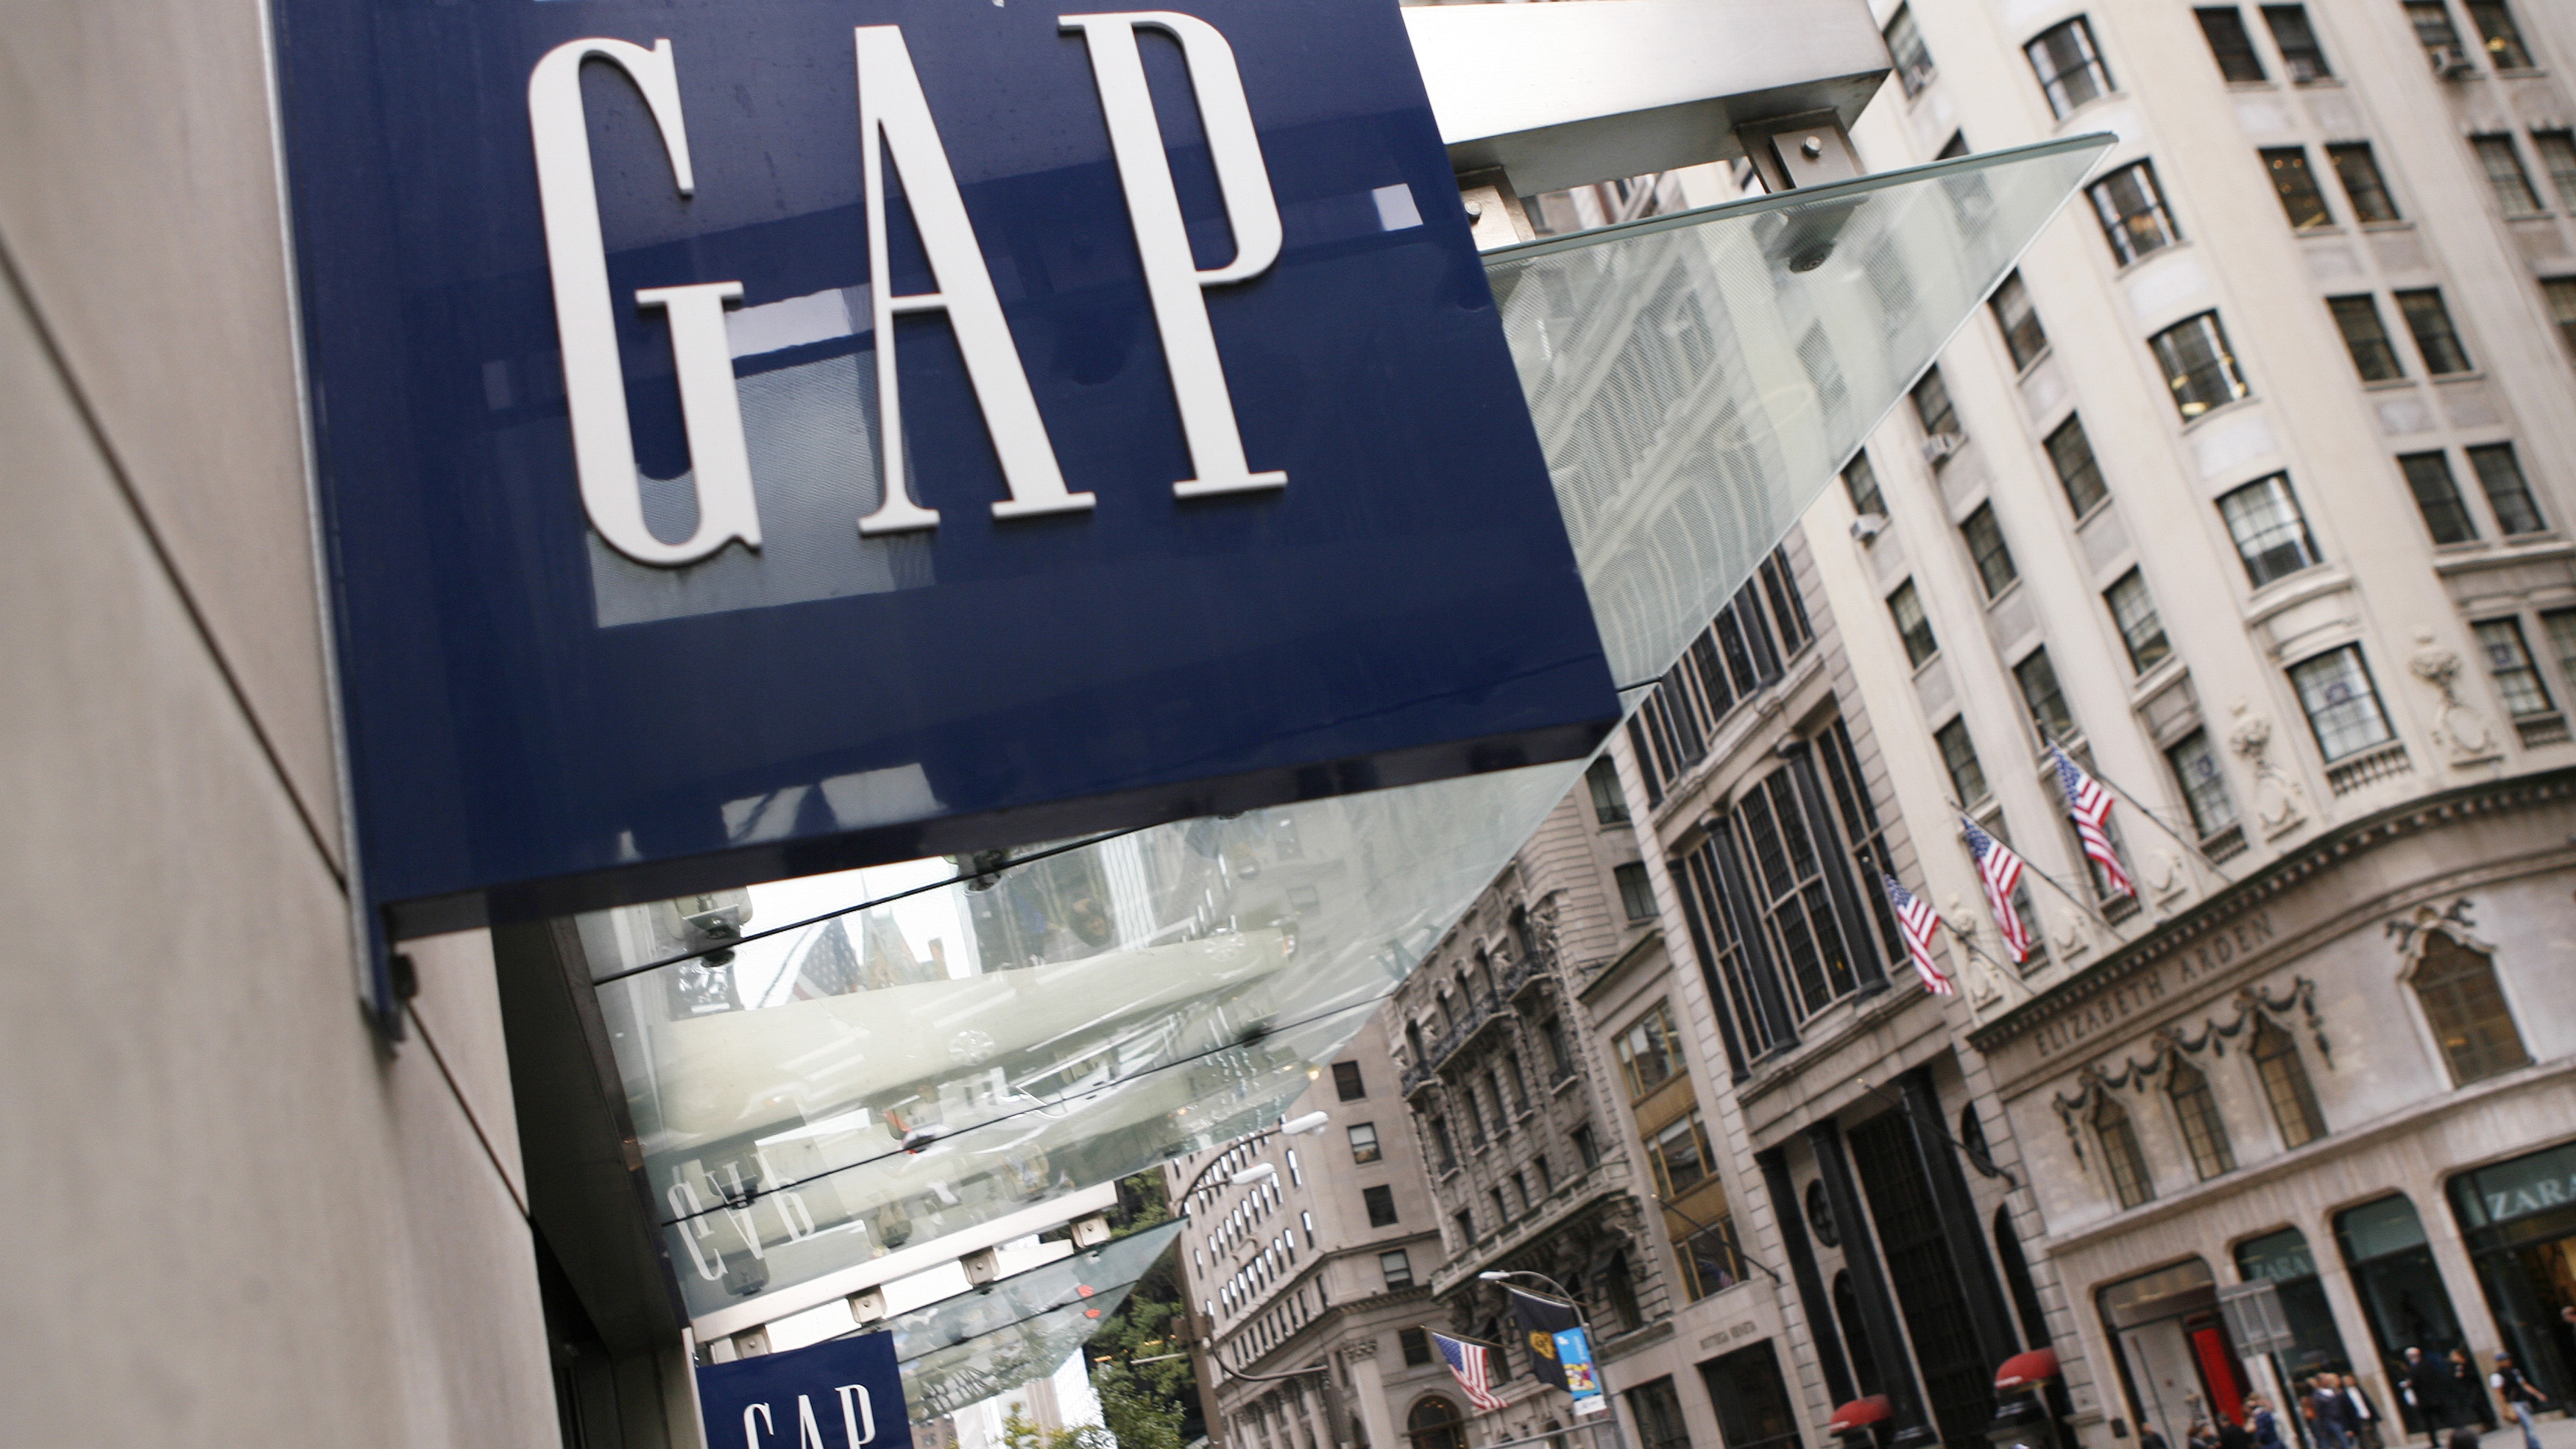 The Gap store is pictured on Fifth Avenue in New York October 8, 2009.